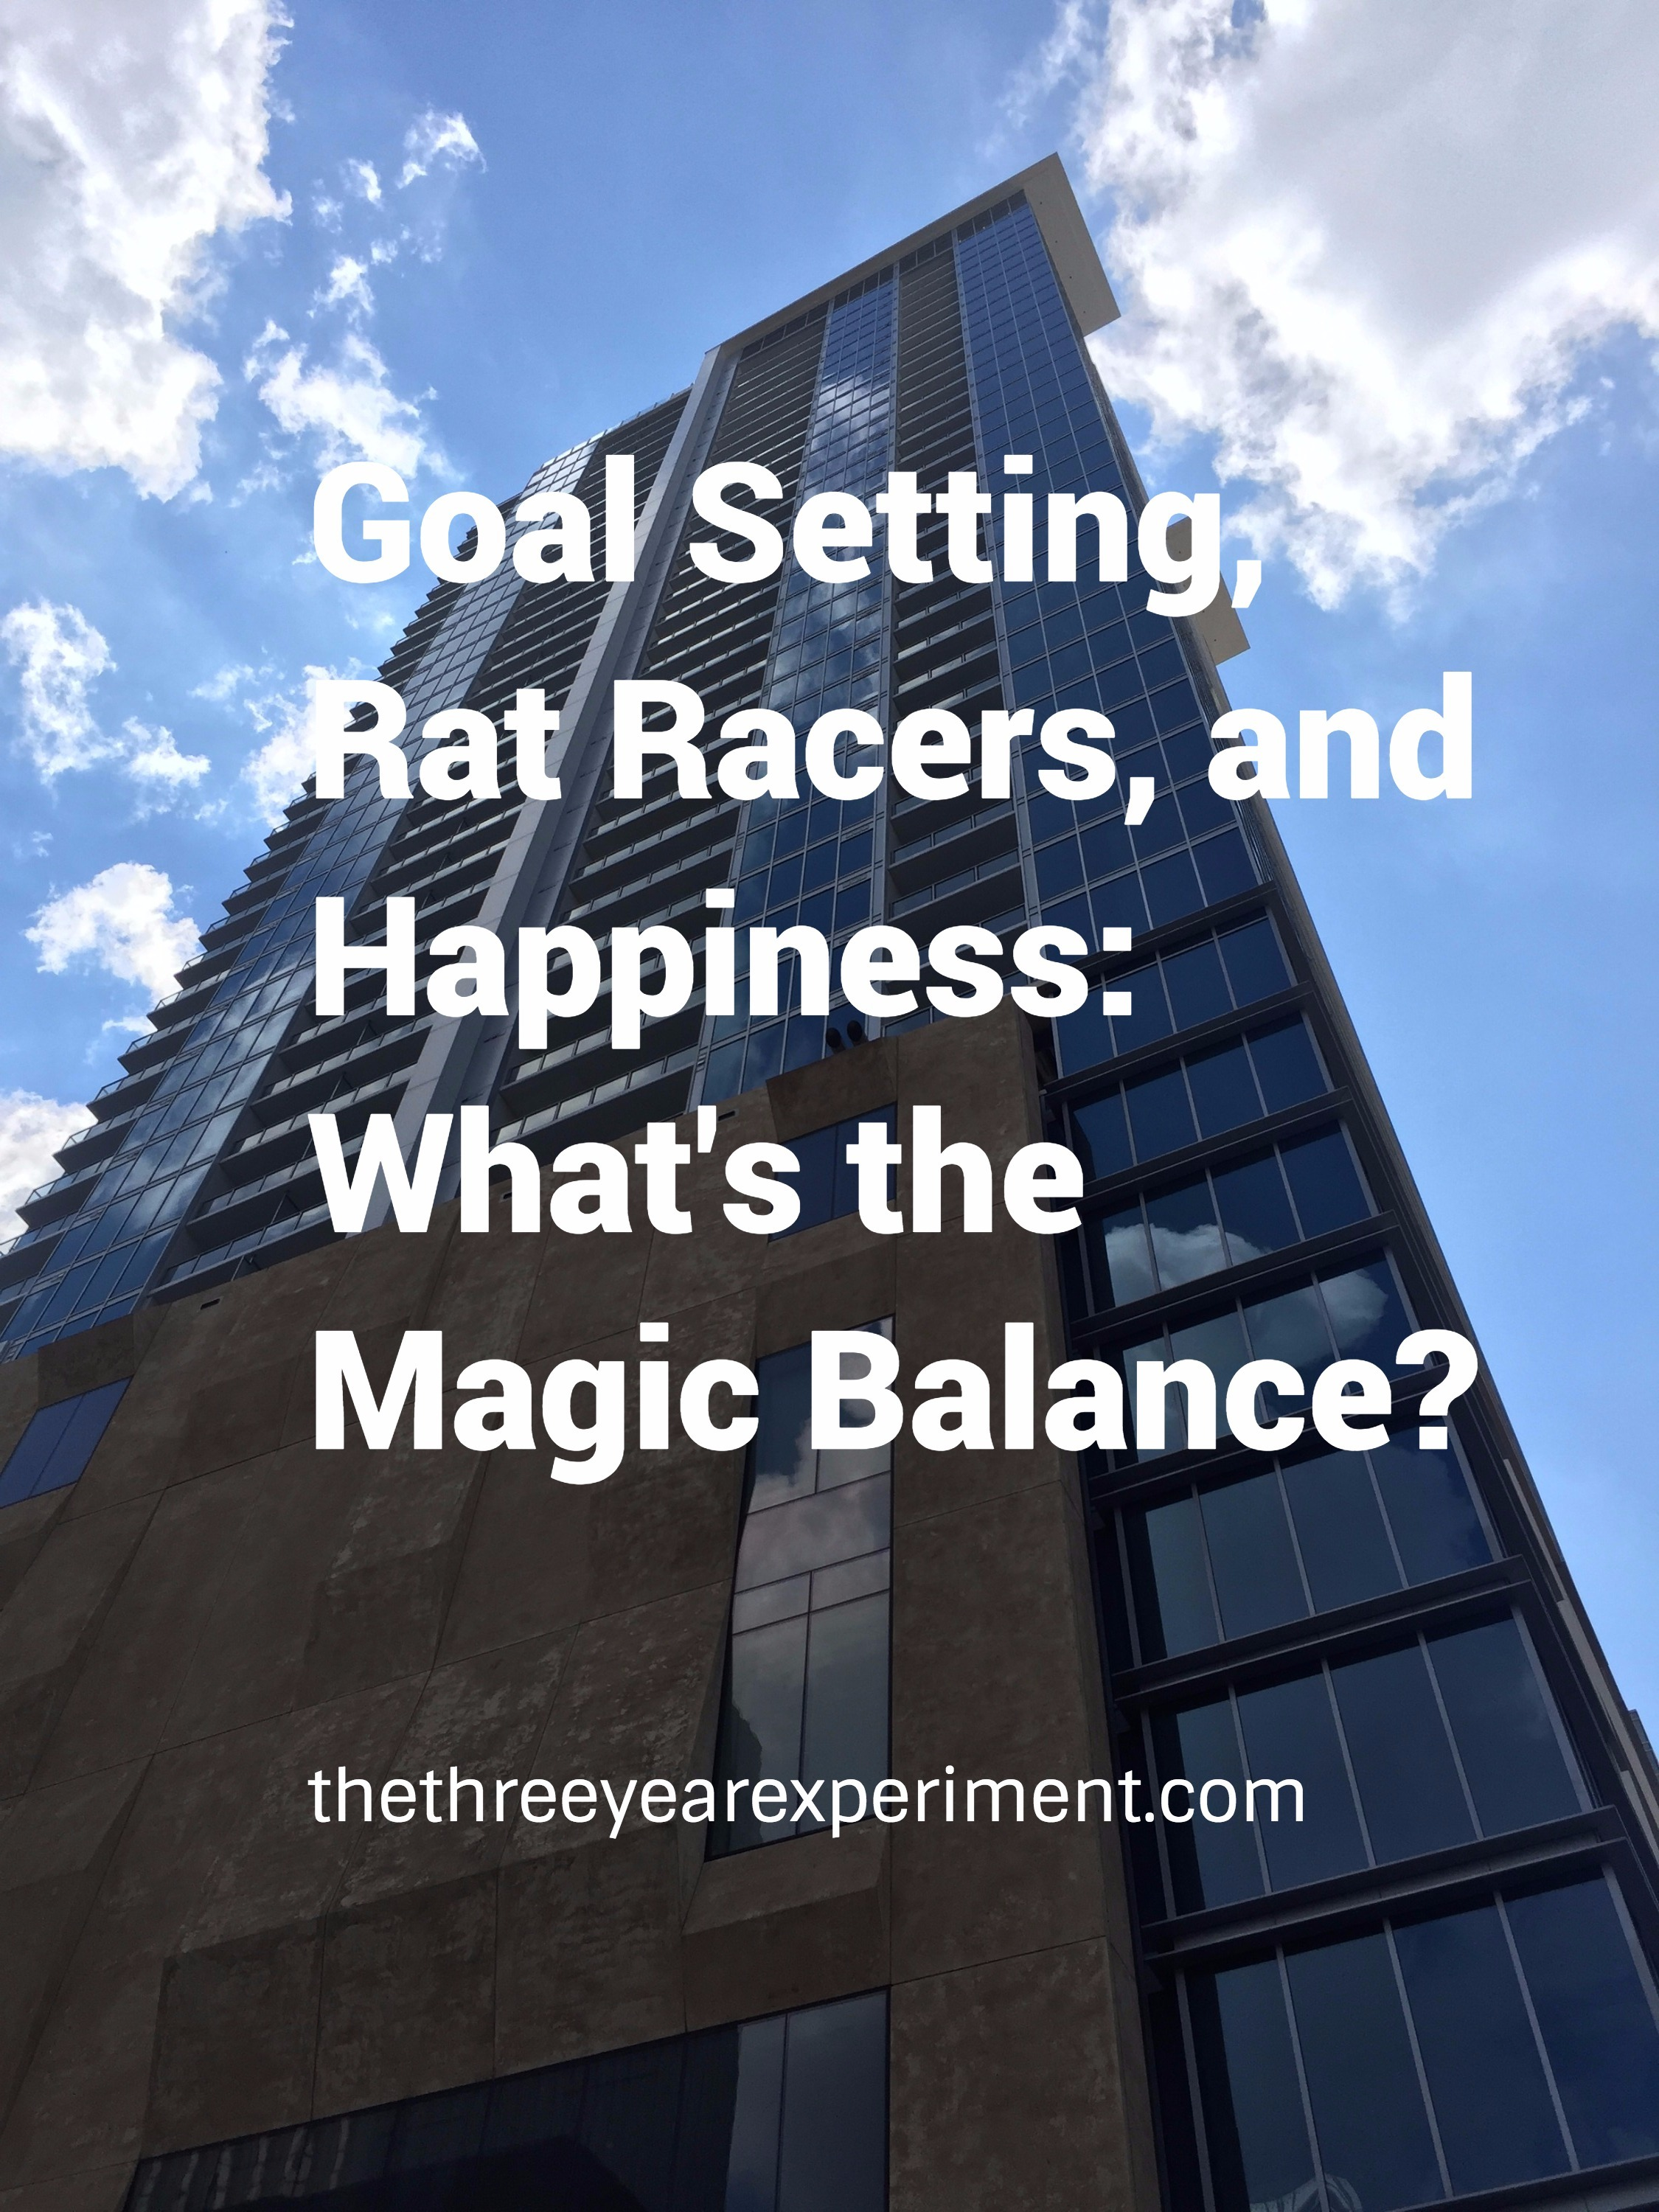 Goal Setting, Rat Racers, and Happiness: What's the Magic Balance?--www.thethreeyearexperiment.com